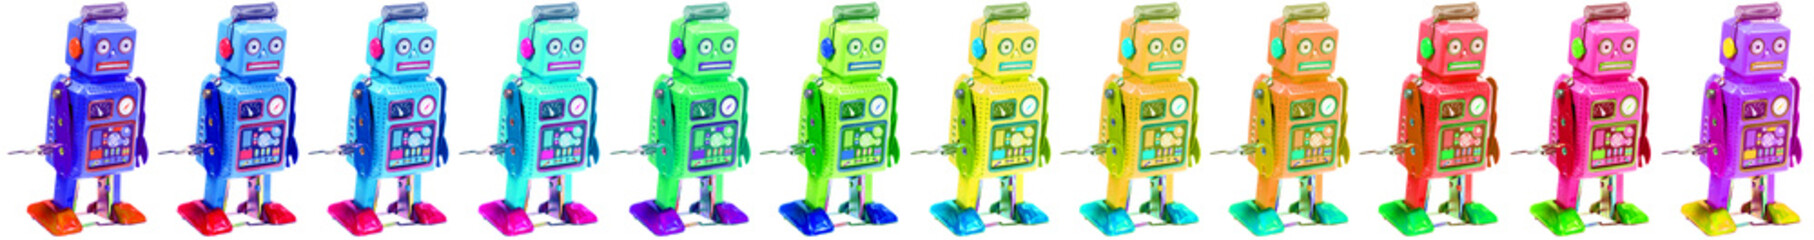 collection de robots couleurs